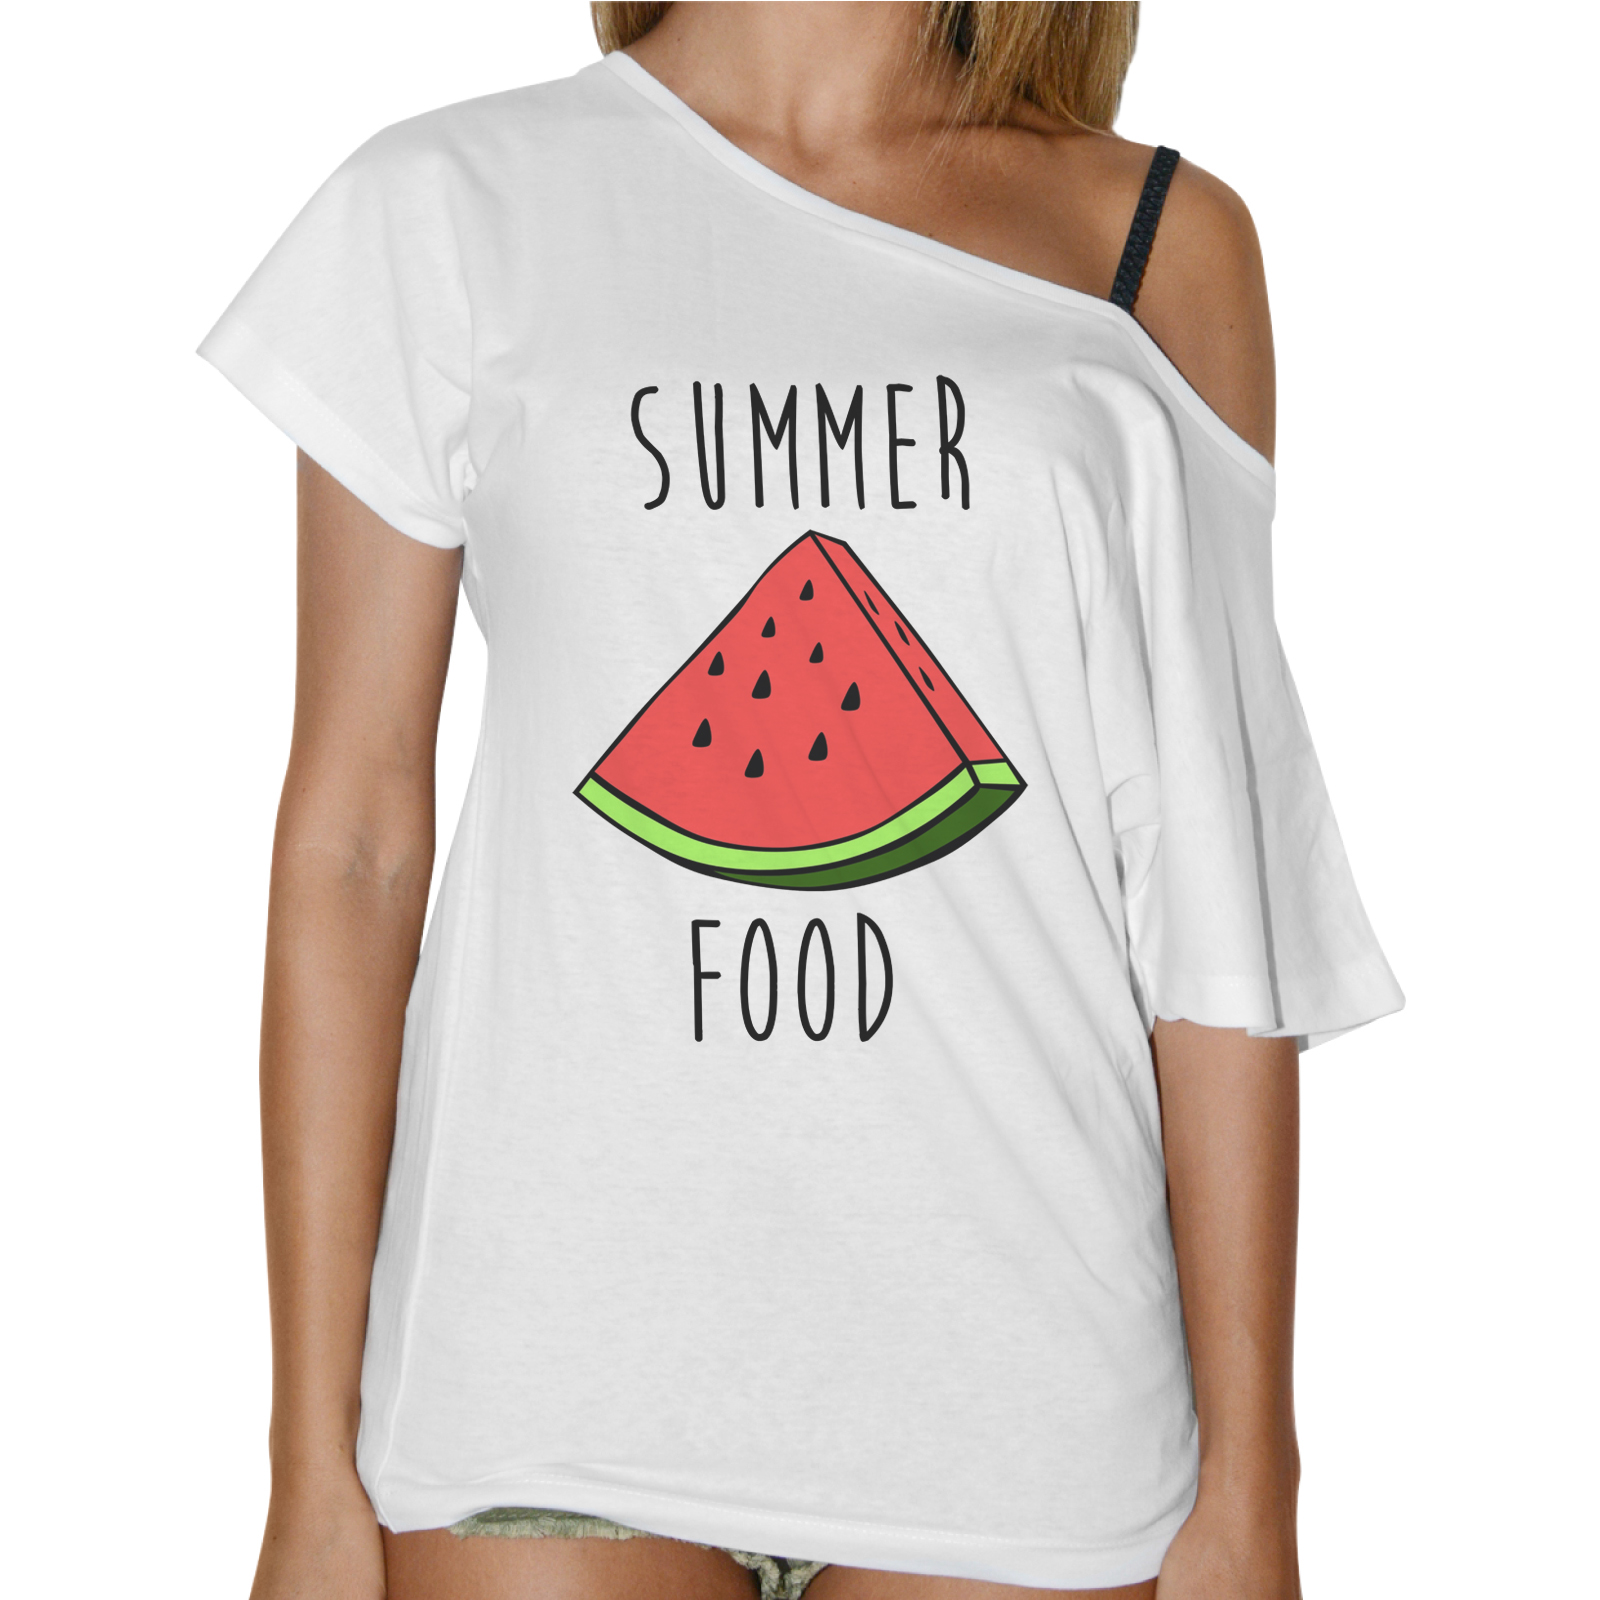 T-Shirt Donna Collo Barca SUMMER FOOD